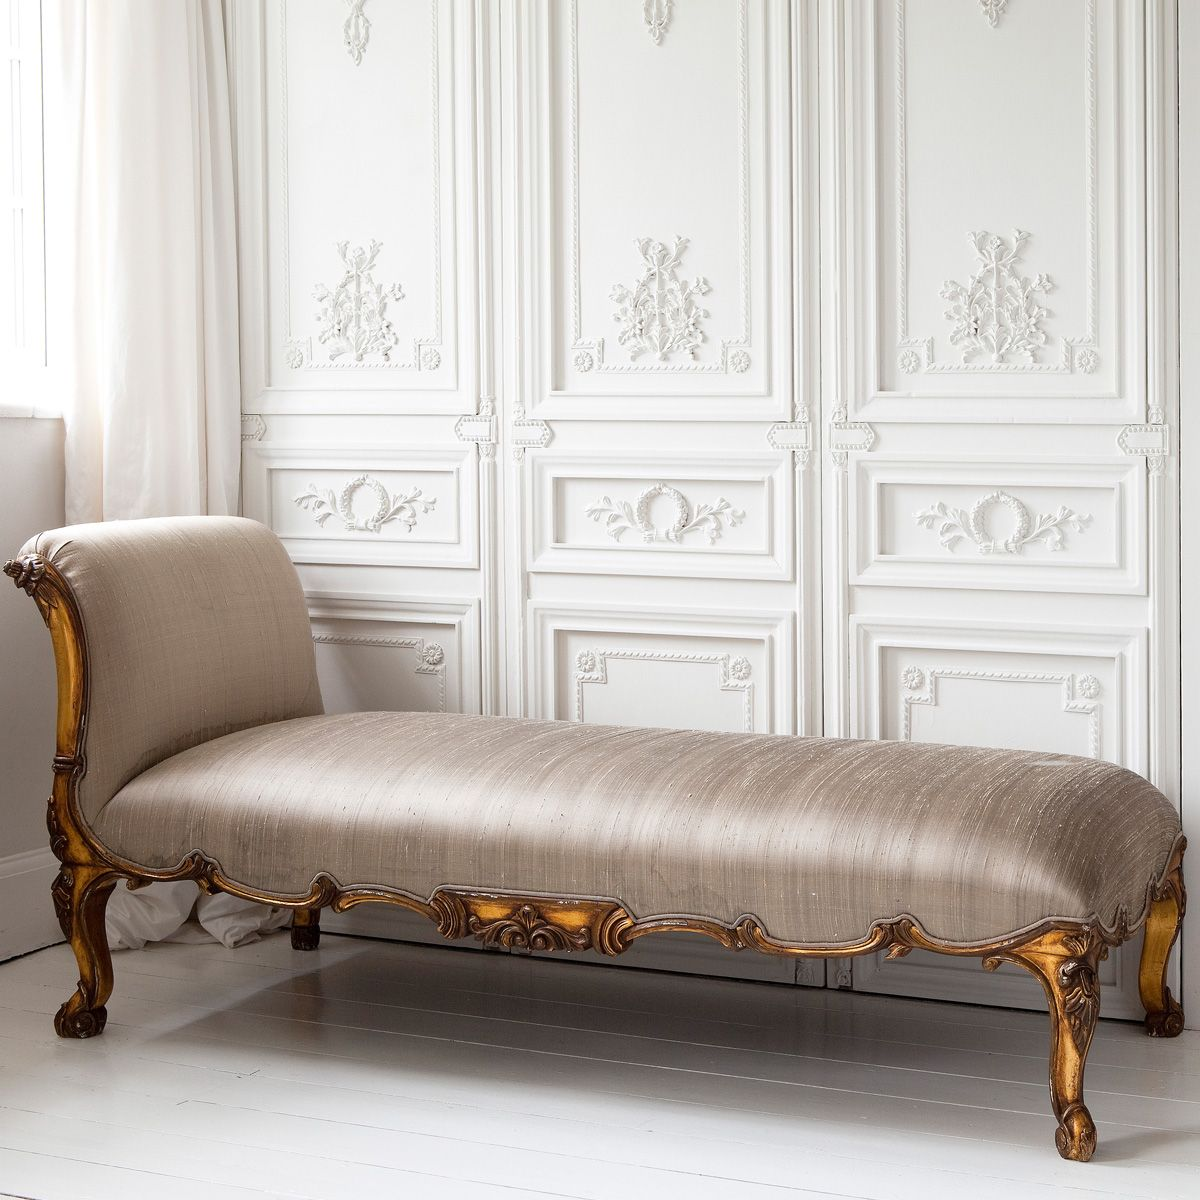 versailles gold chaise longue french bedrooms chaise longue and versailles. Black Bedroom Furniture Sets. Home Design Ideas